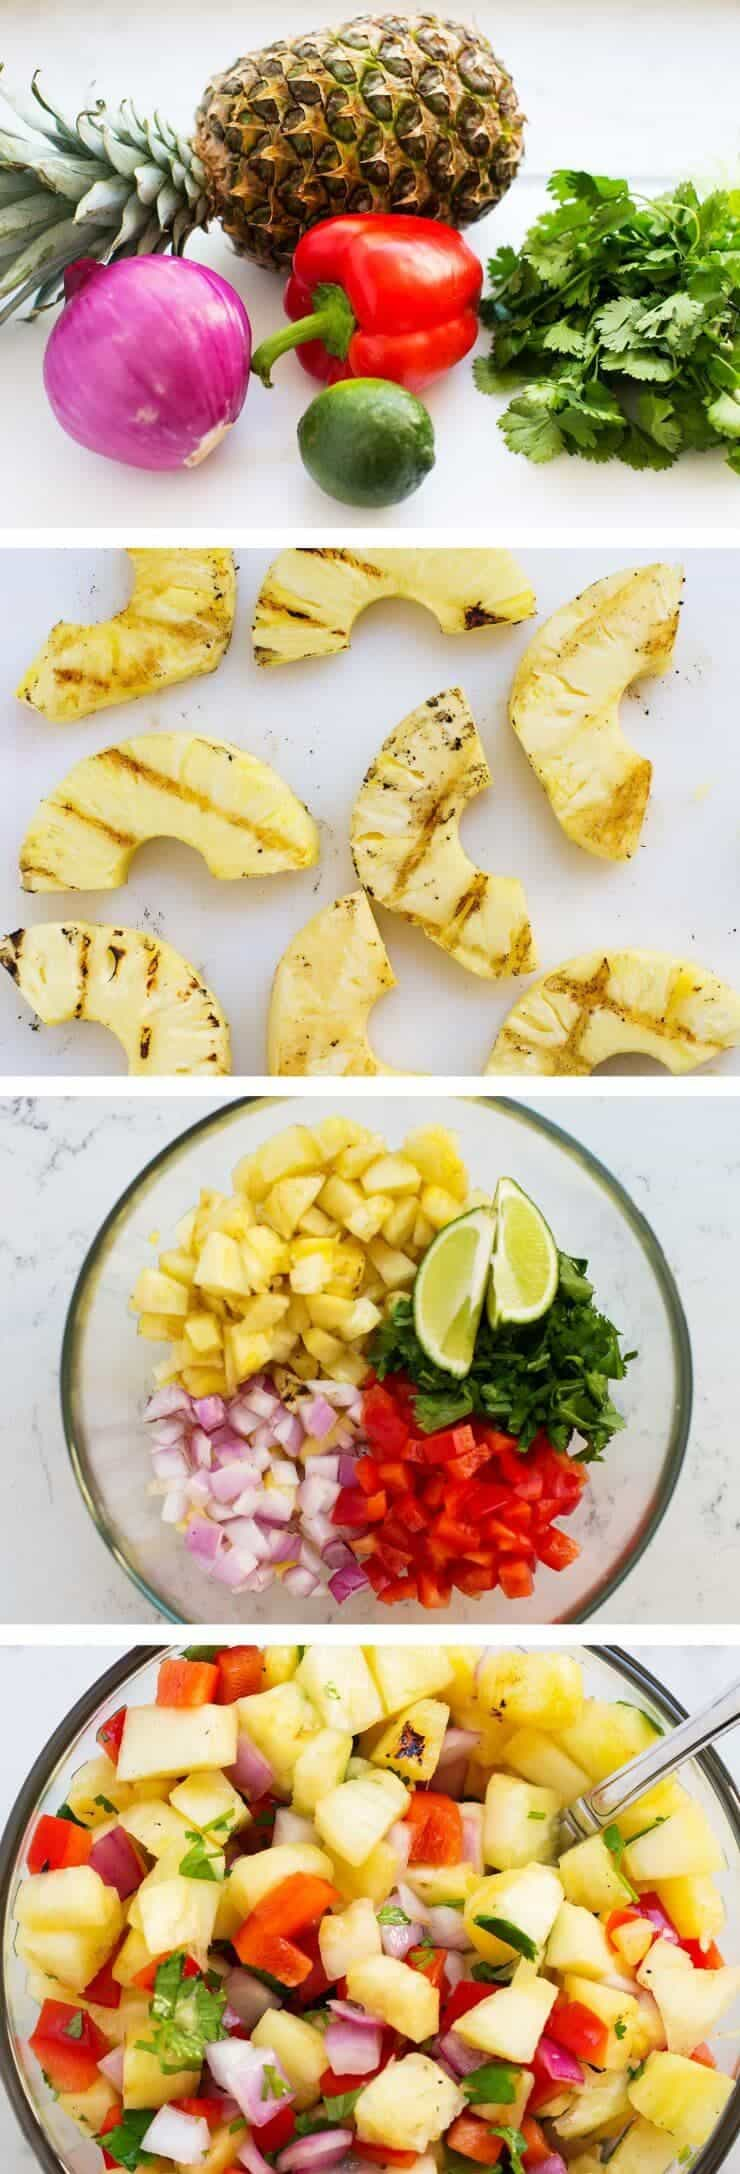 This grilled pineapple salsa is super easy to make and jam packed with flavor – and only takes 5 ingredients to make. It's perfect for summer BBQs as either an appetizer or also tastes amazing on top of hot dogs.